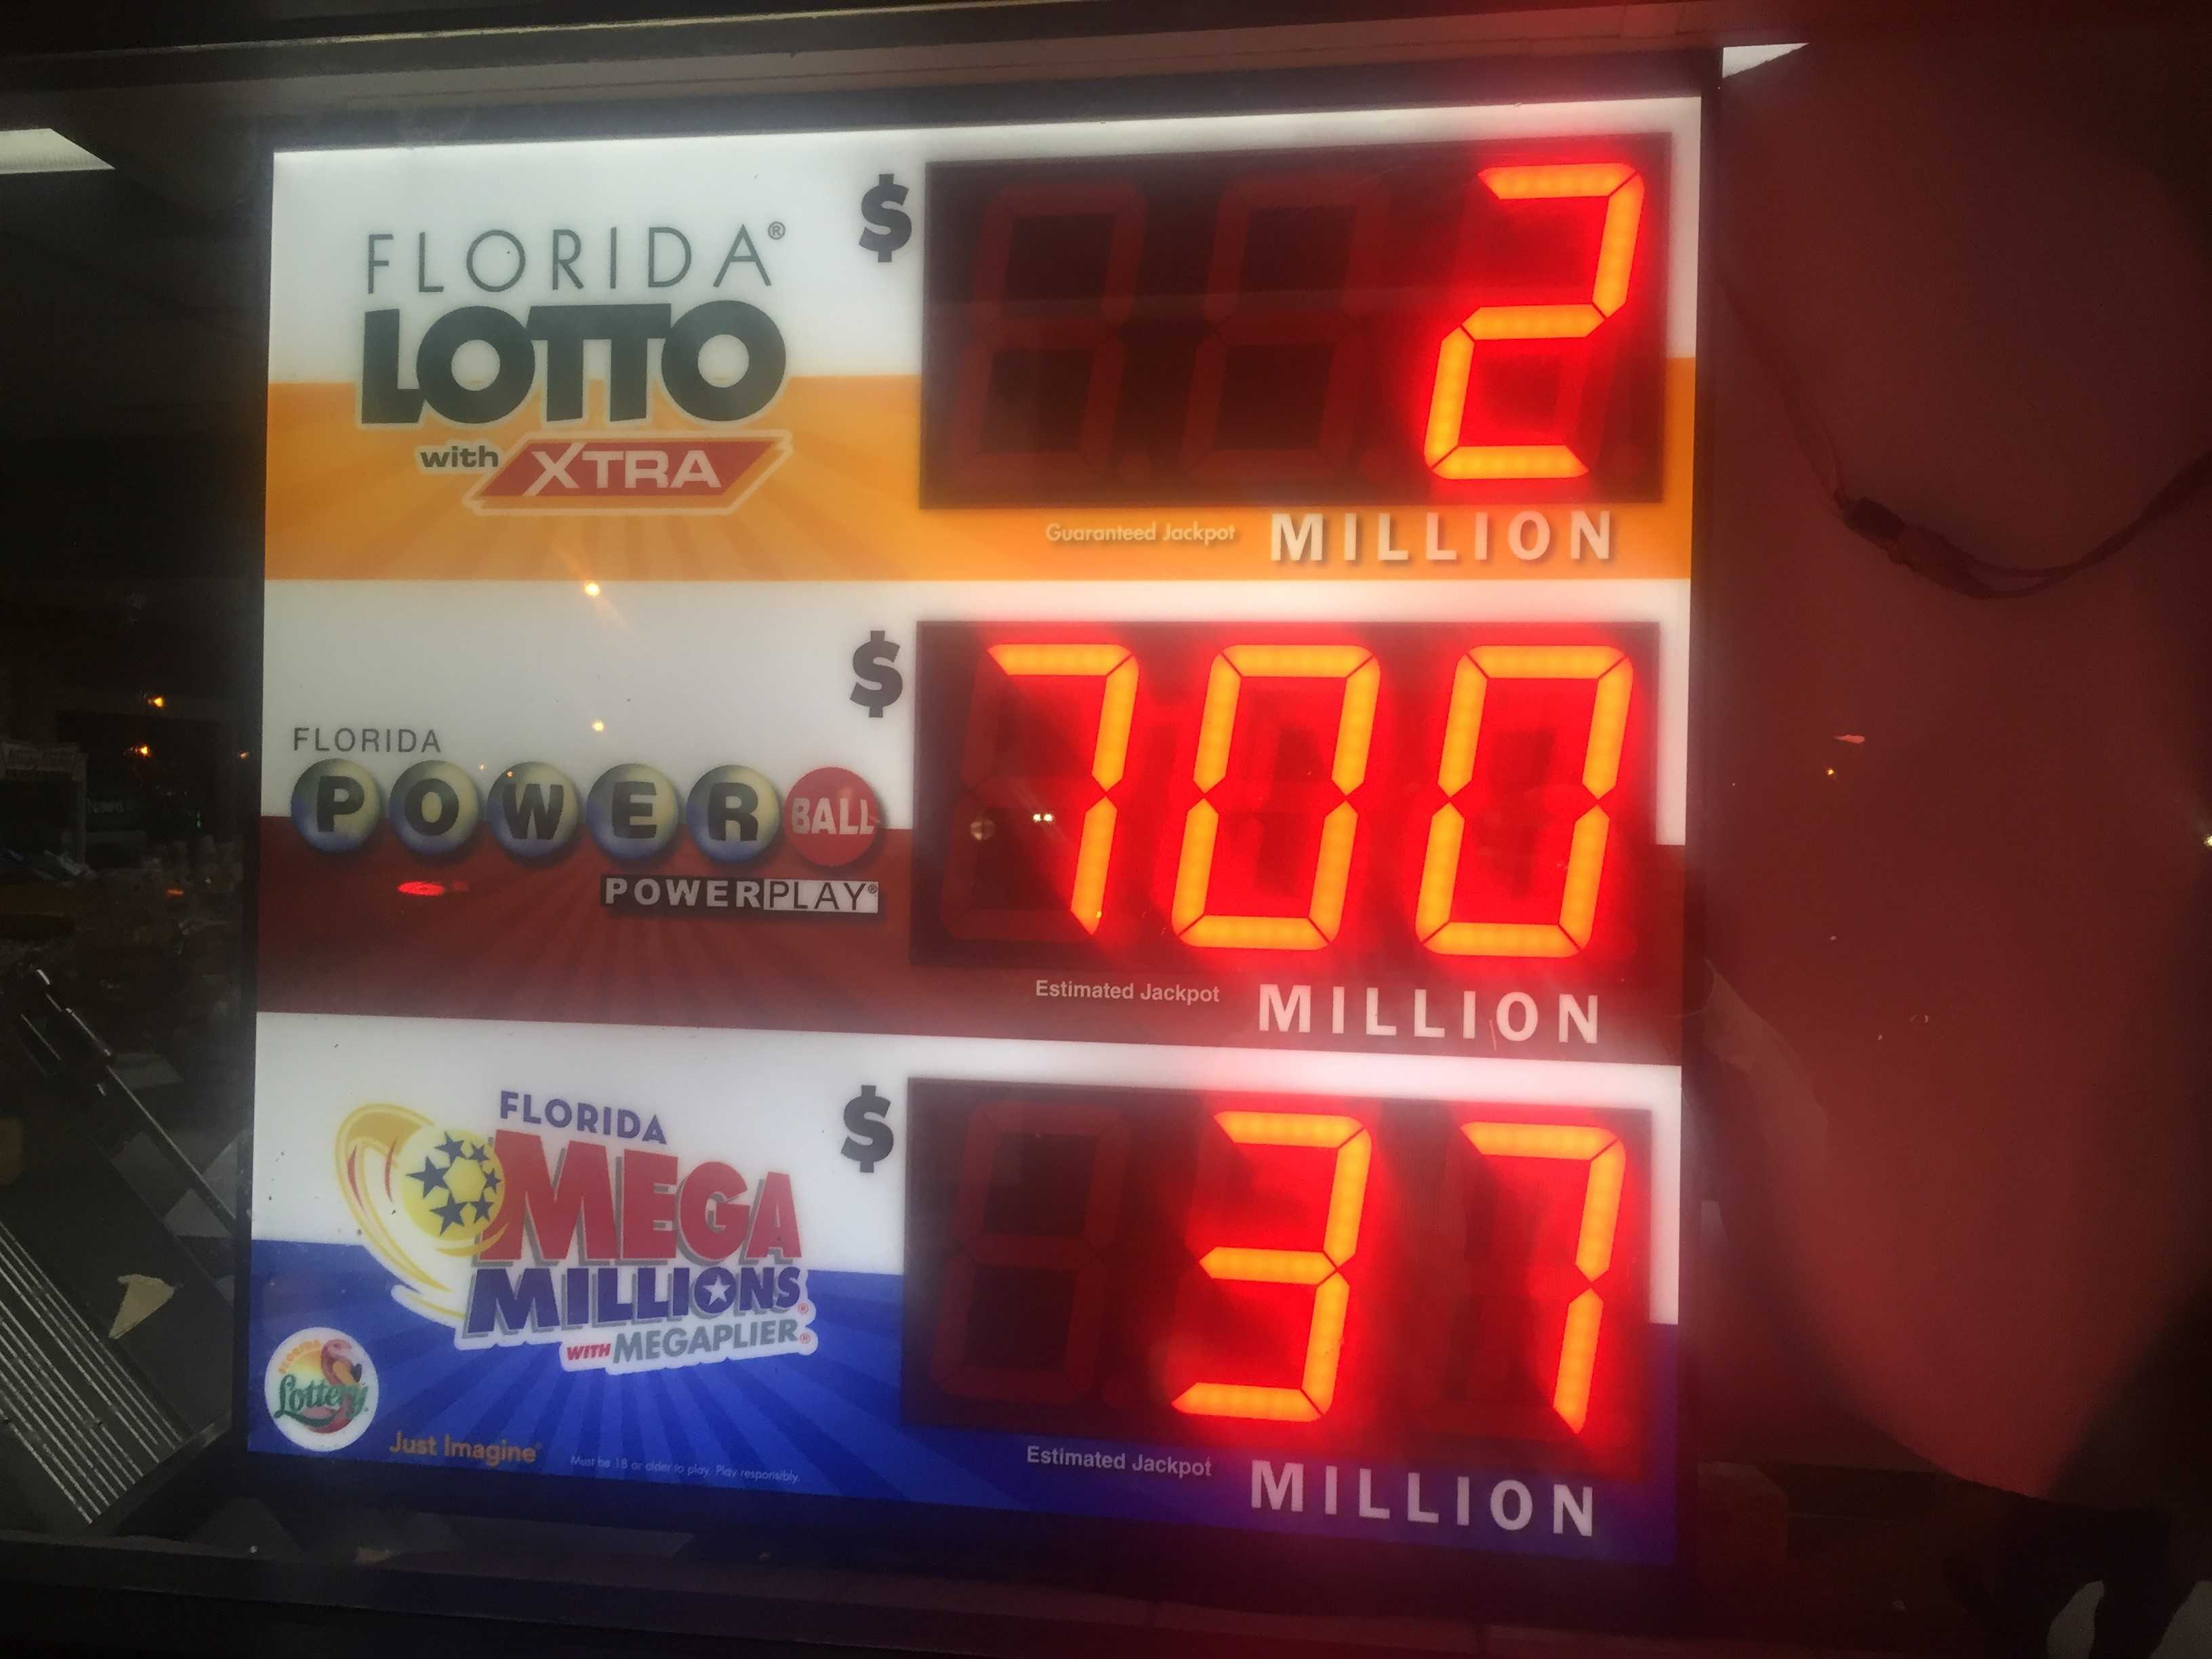 Where's the winner? Lottery error adds intrigue to Powerball